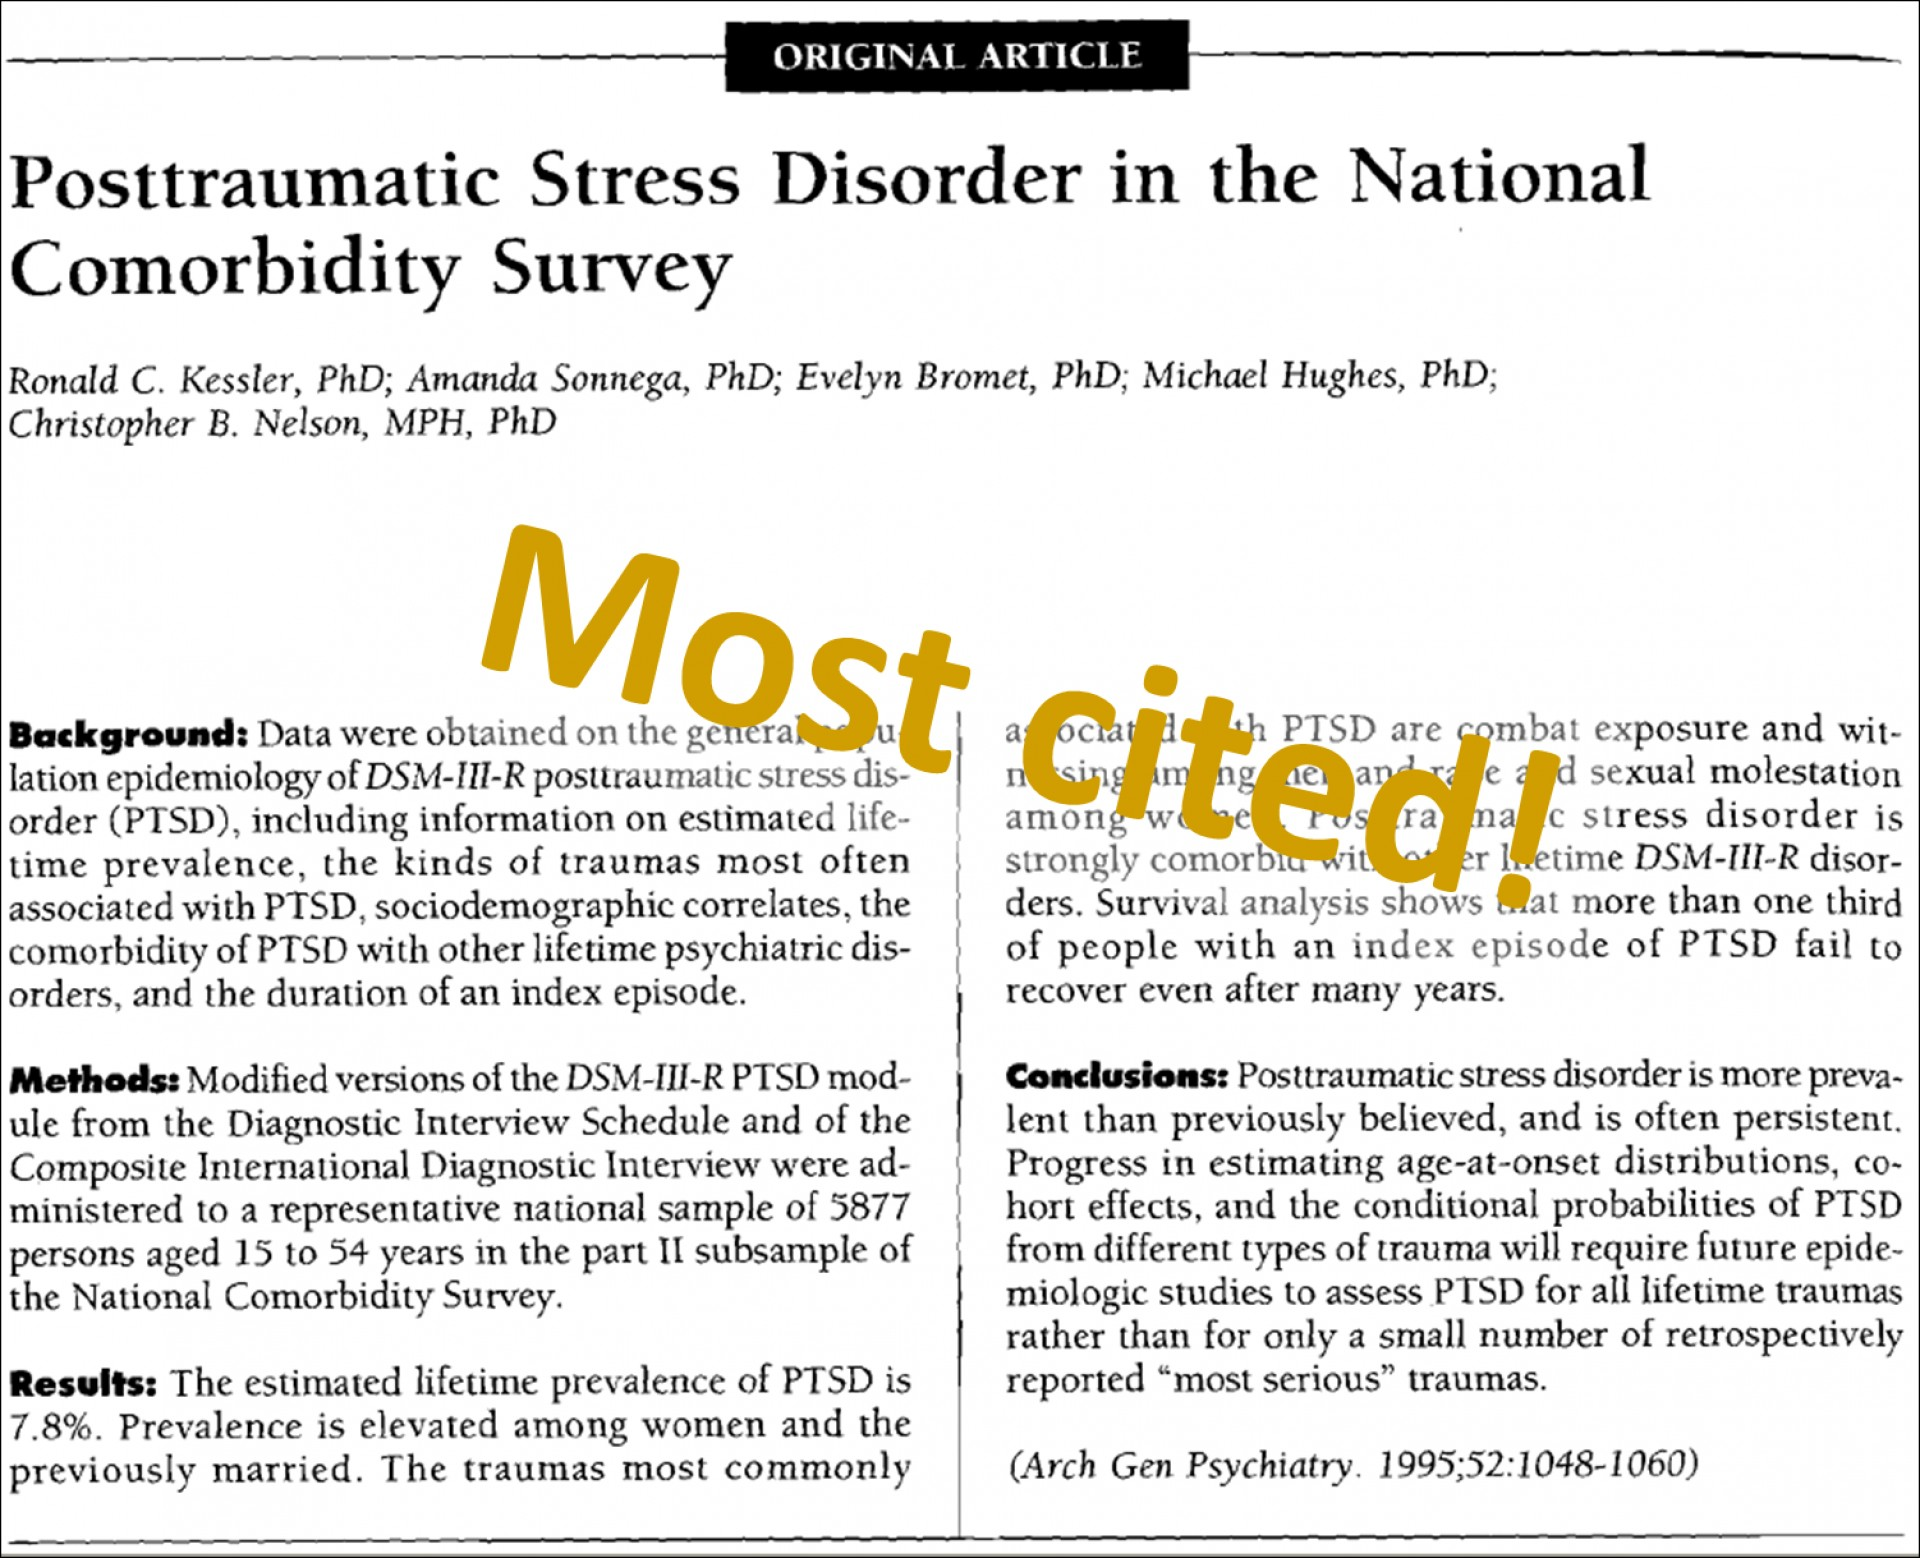 001 Ptsd Research Paper Trauma Recovery Most Cited Amazing Topics Ideas Conclusion 1920